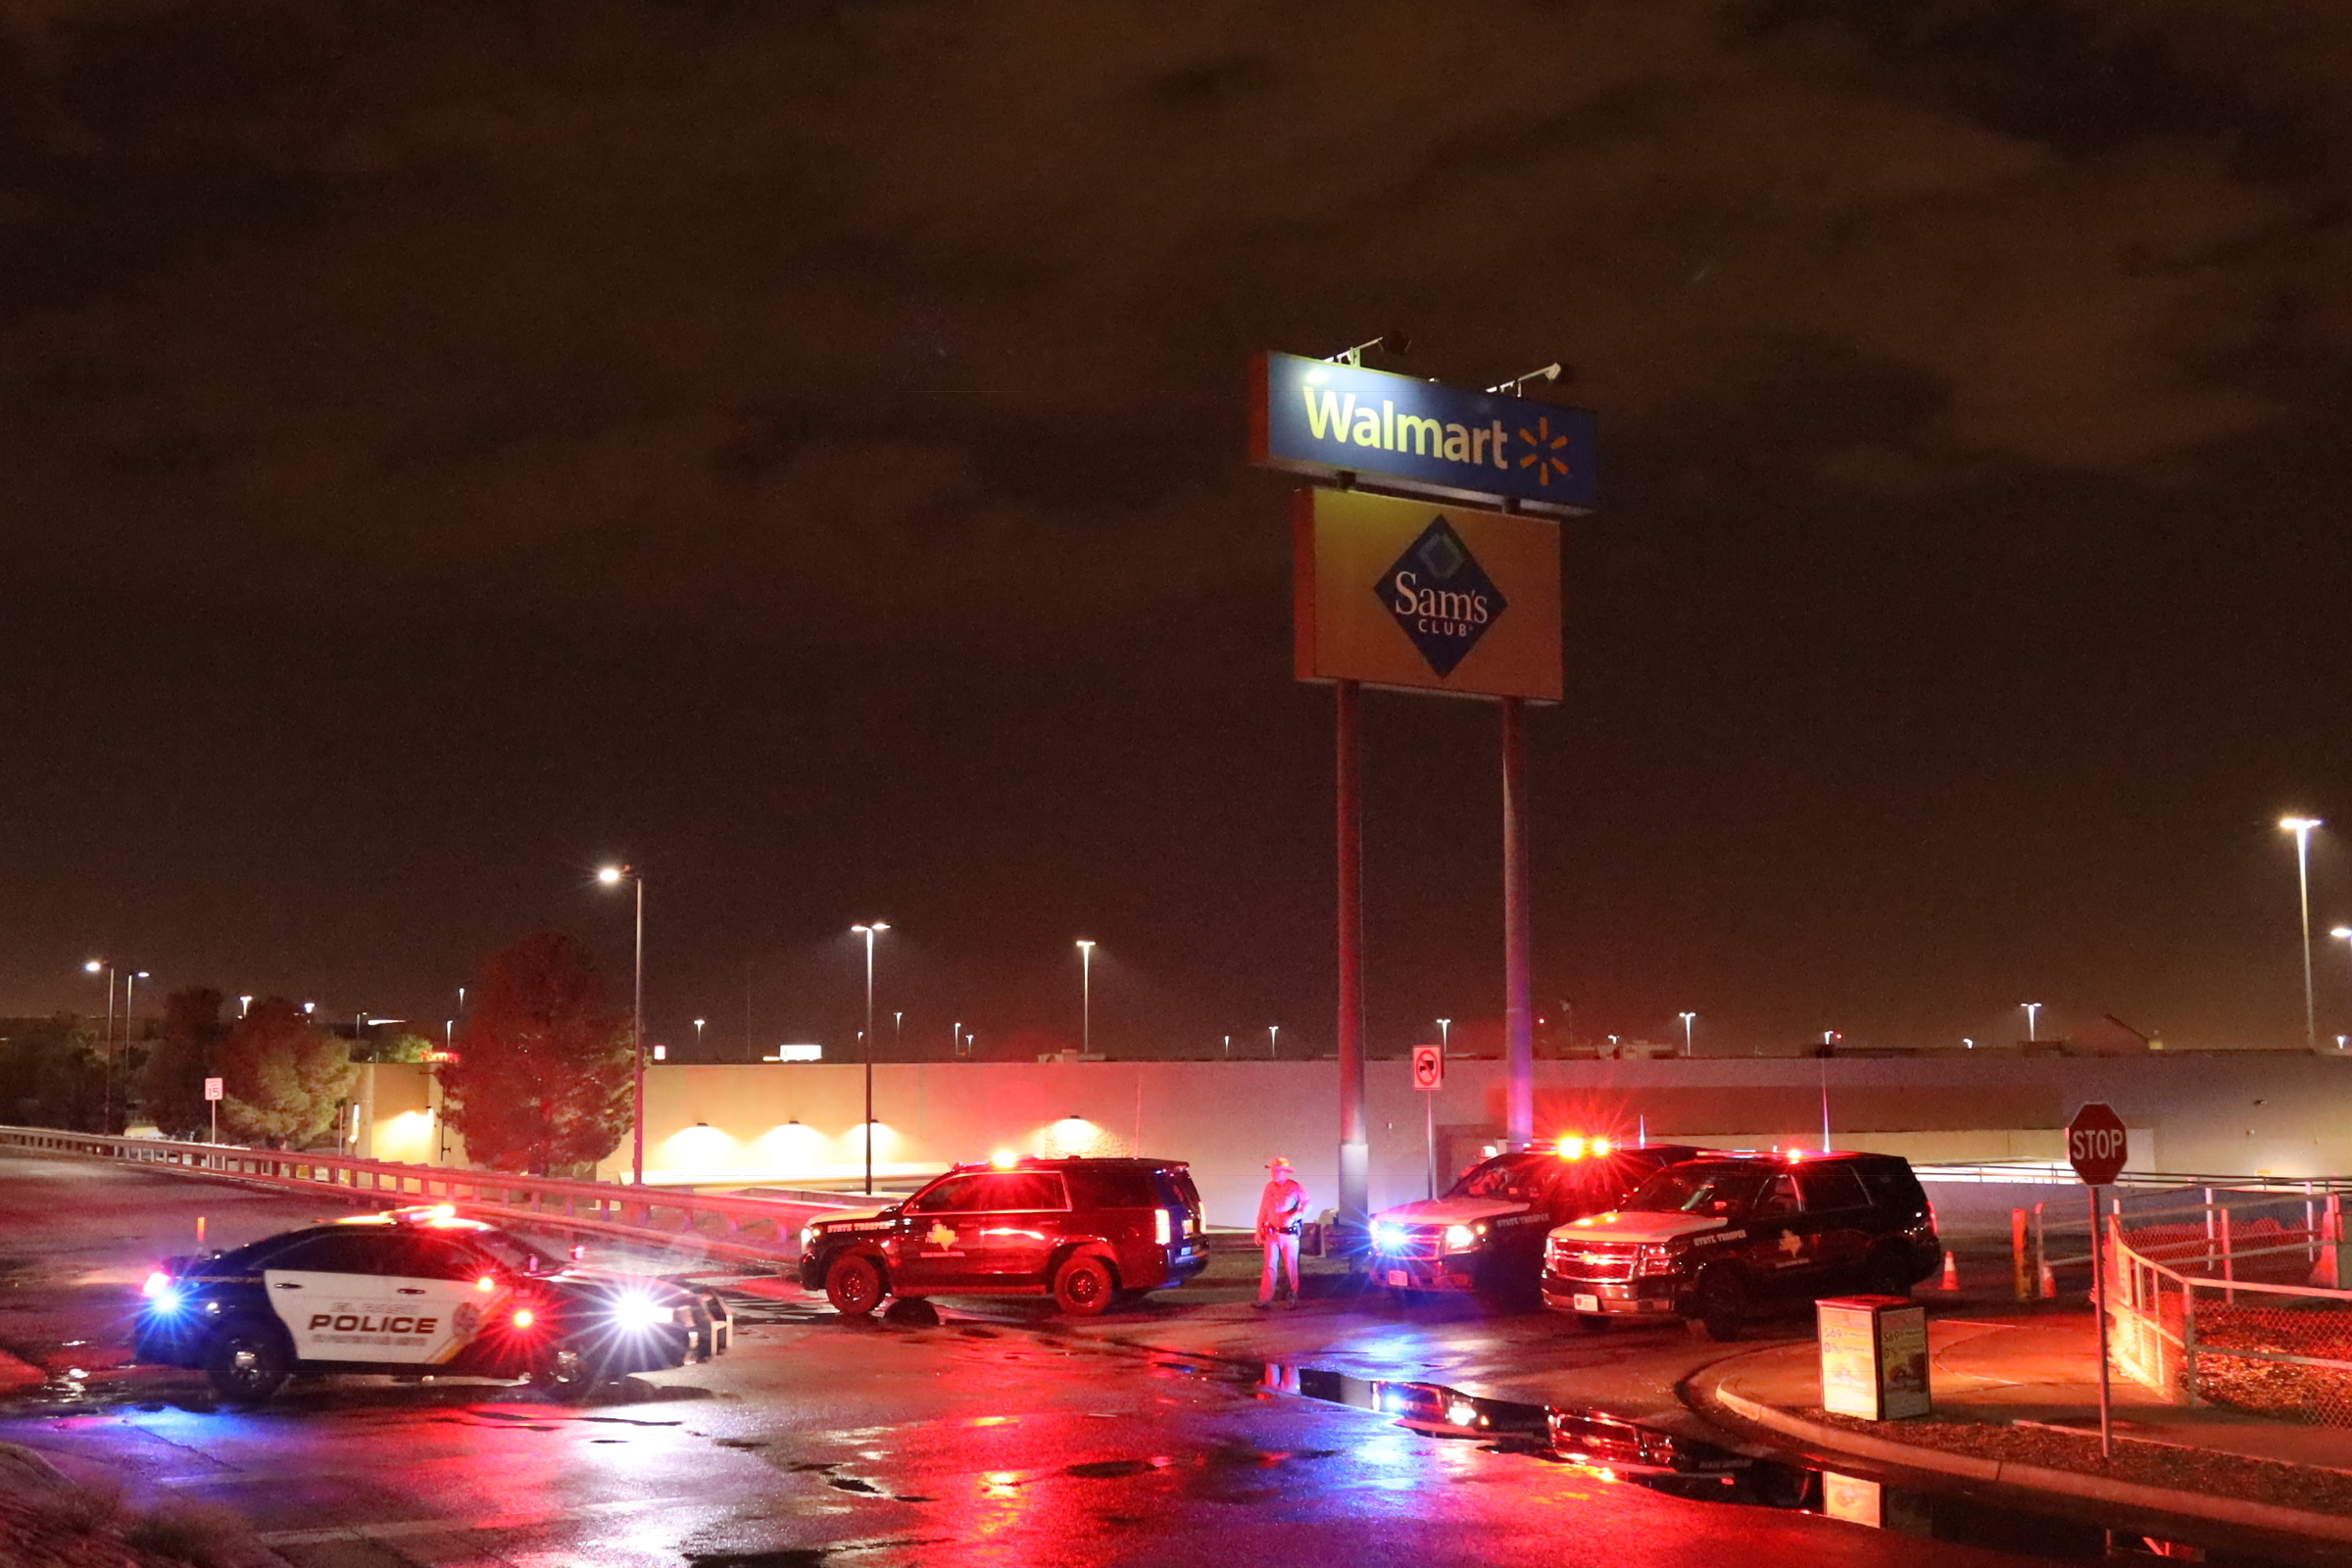 Blood Banks In El Paso Are 'Overwhelmed' By Donations After Walmart Mass Shooting